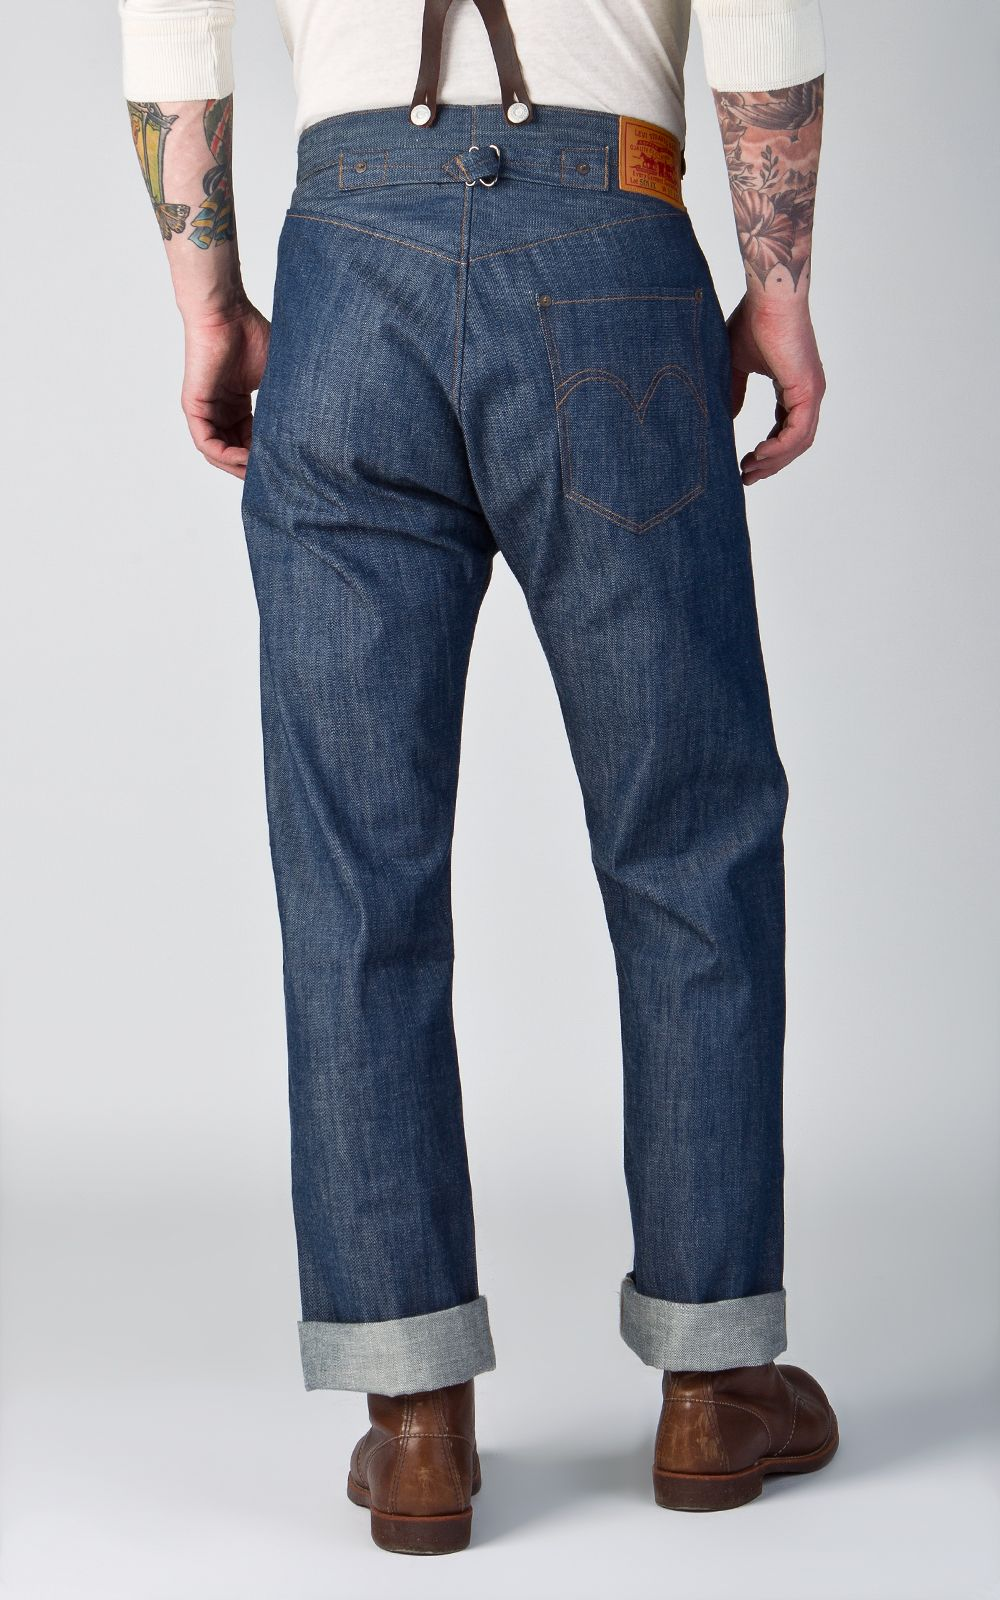 c0523b9d The Levi's® 1890 XX501 Rigid is made from 9oz plain selvedge denim (12oz  after wash). This is a remake of the very first Levi's® jeans with all the  ...